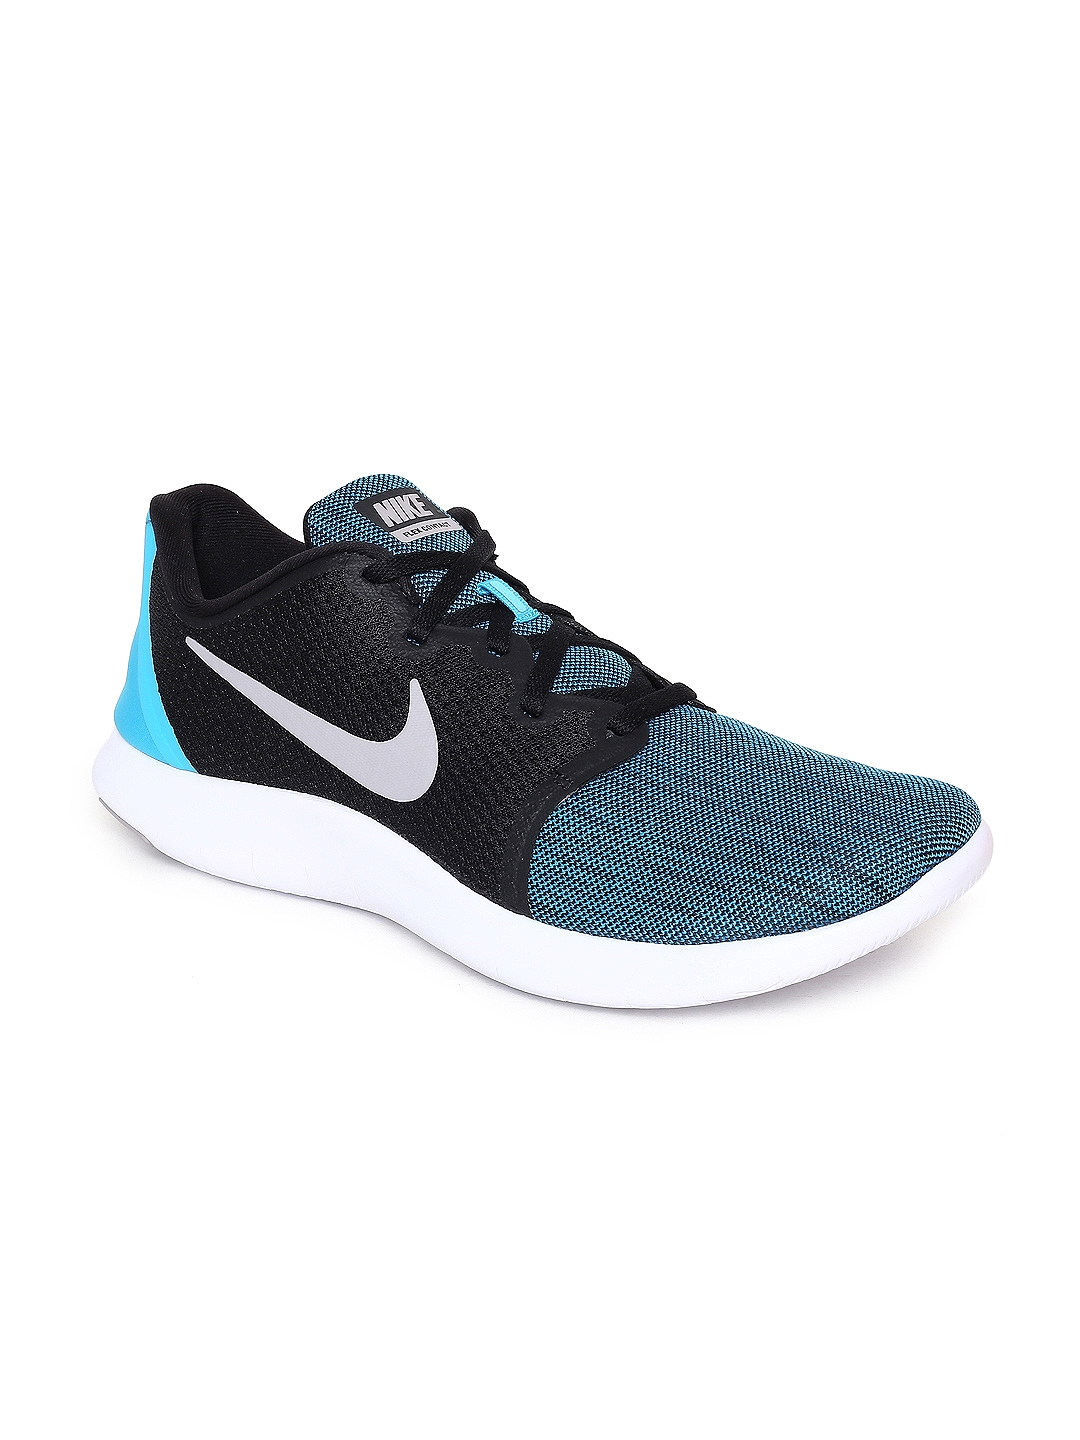 1b5a4ac1e49d Buy Nike Men Blue FLEX CONTACT 2 Running Shoes - Sports Shoes for ...